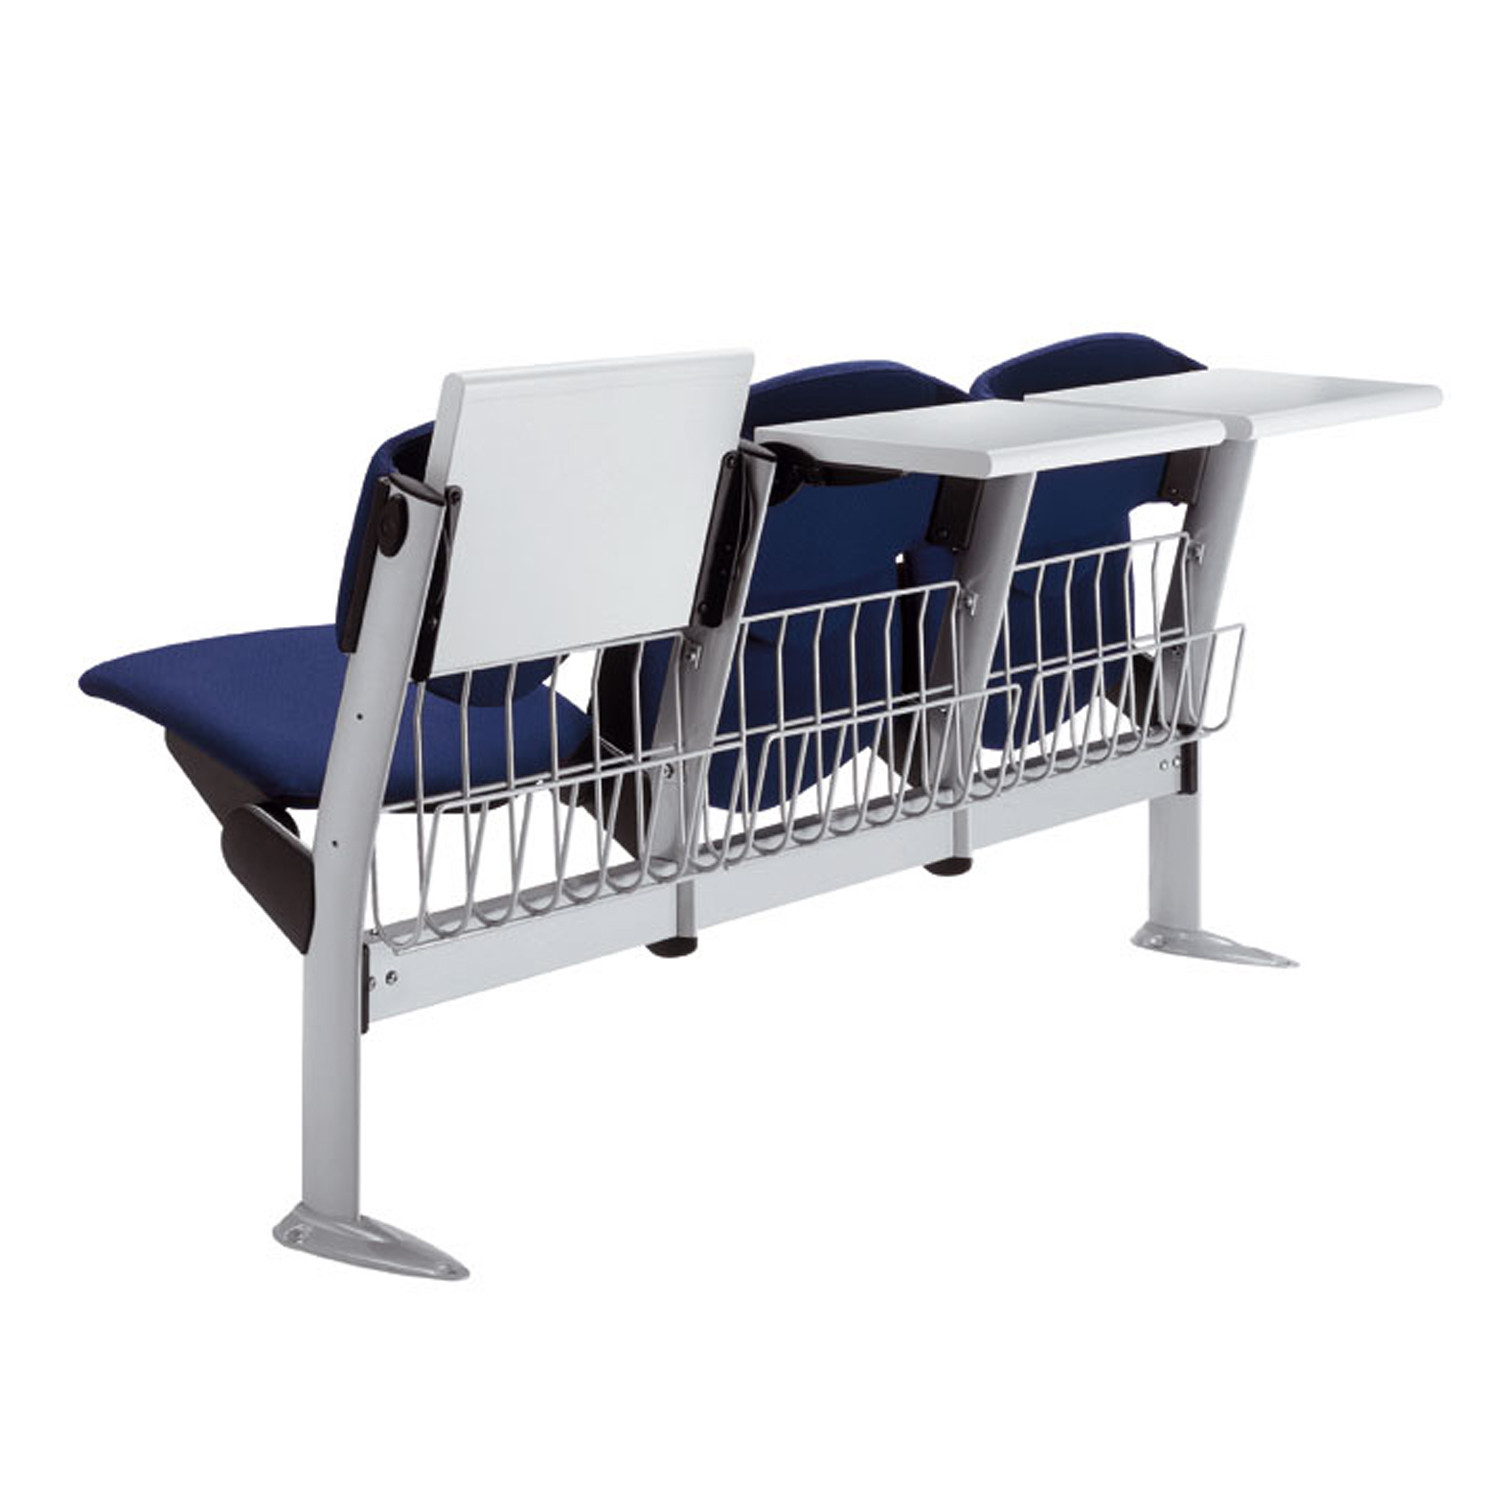 Omnia Beam Seating System